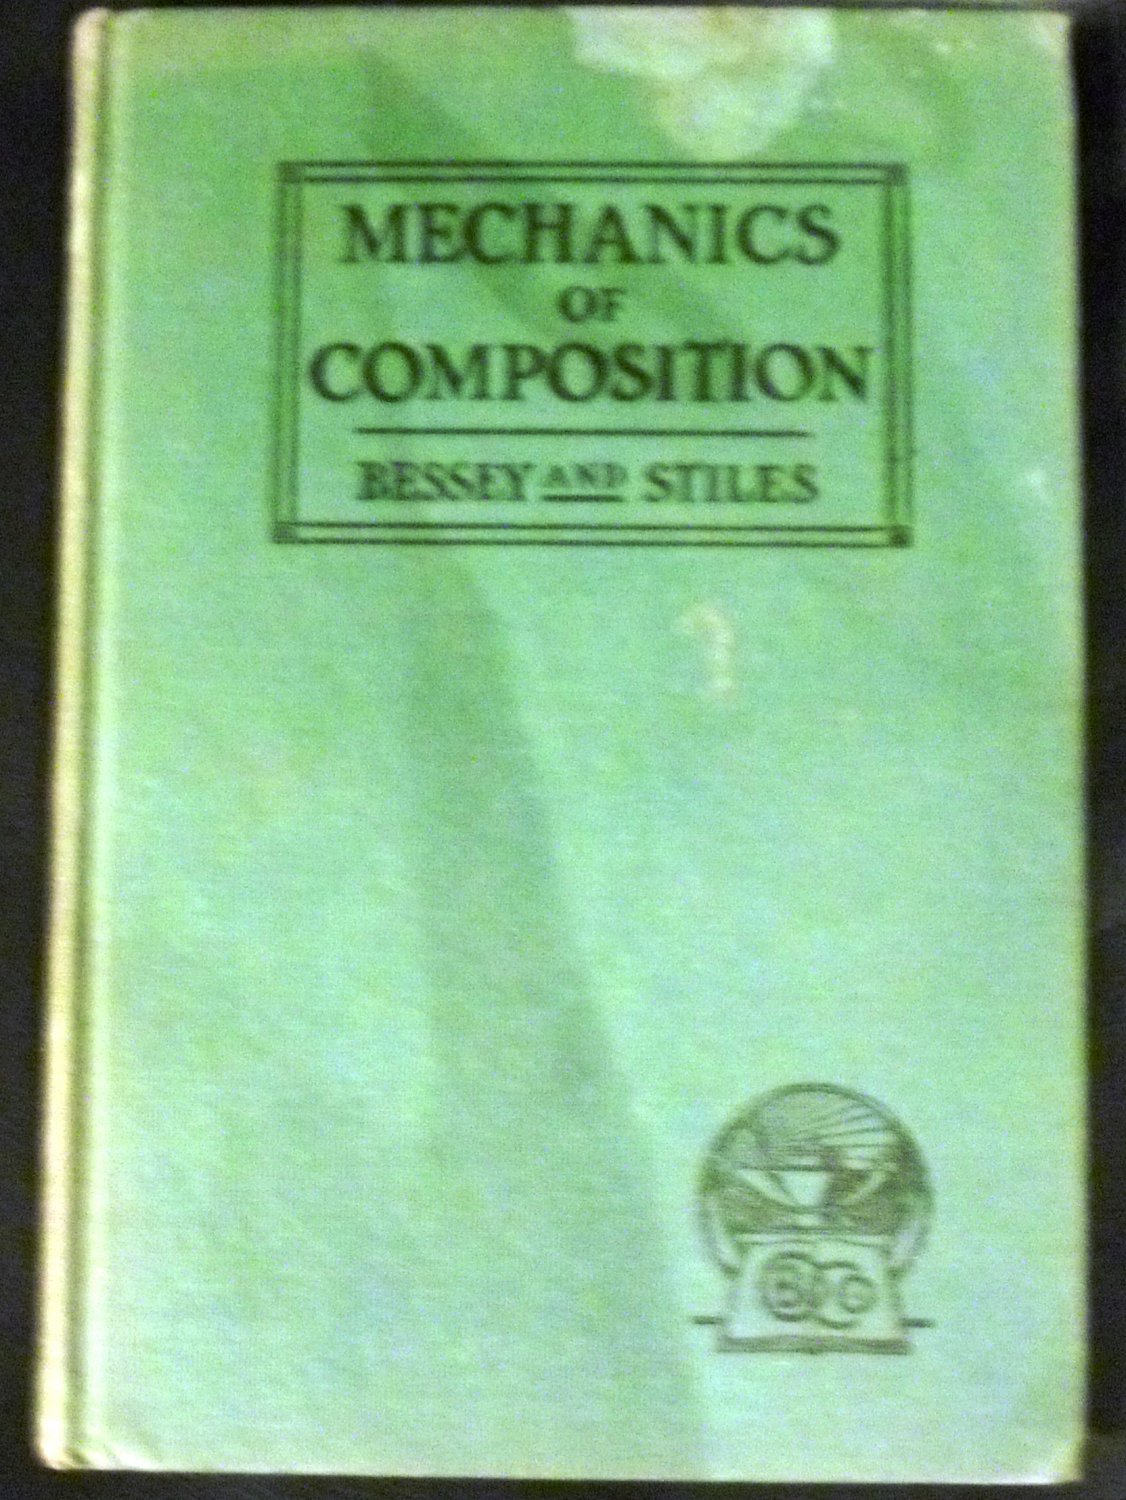 Mechanics of composition, by Mabel Abbot Stiles, R., Bessey (1928)